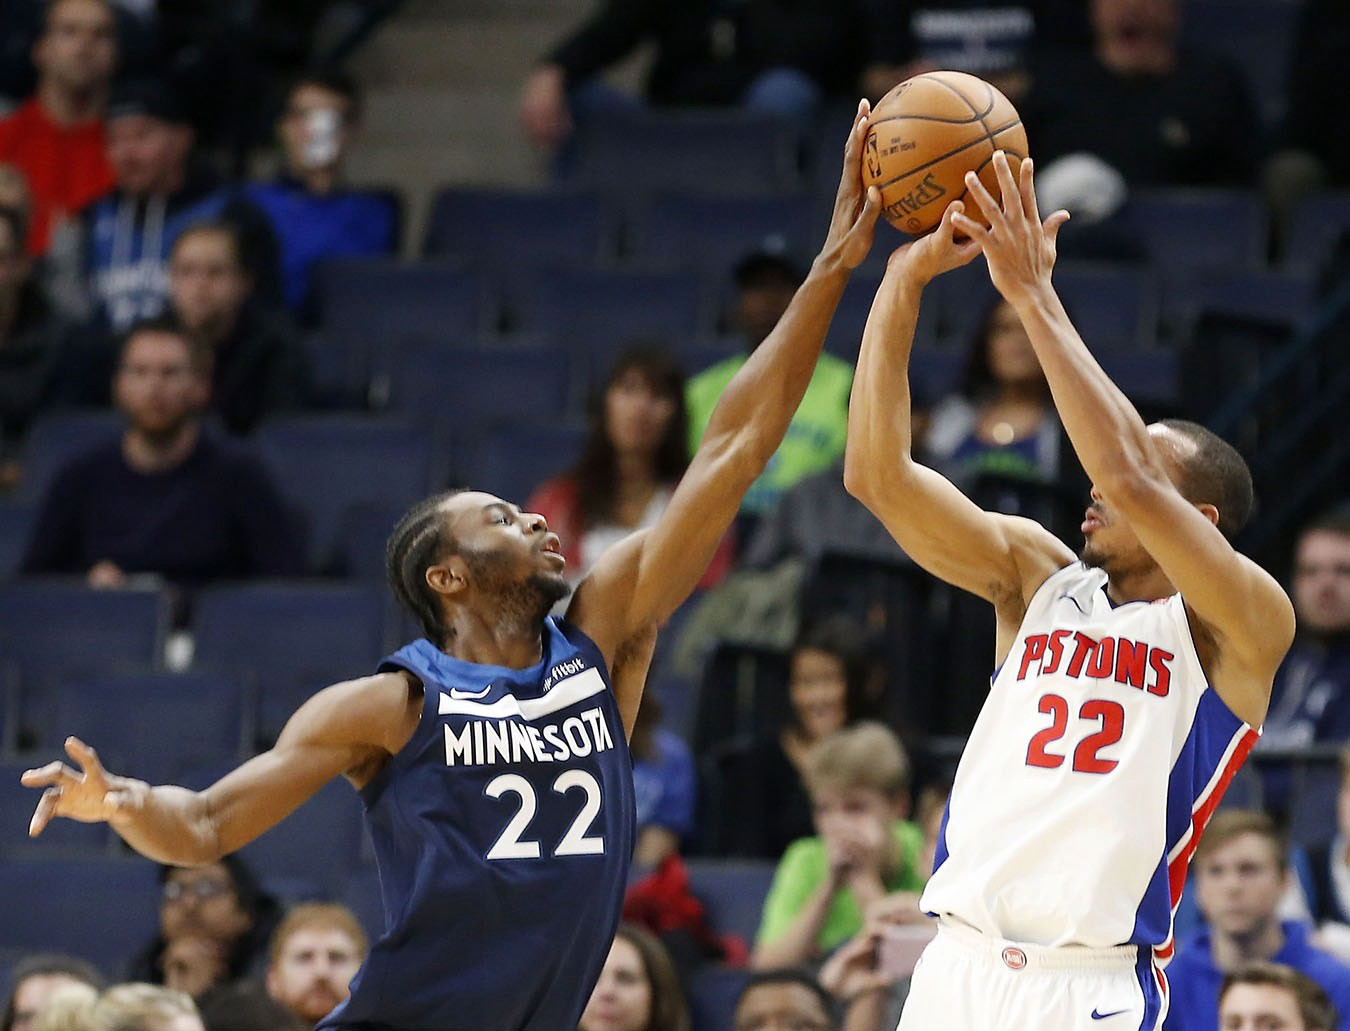 fcf88d59b45c An extremely rare photo of Andrew Wiggins making a defensive play in the  wild